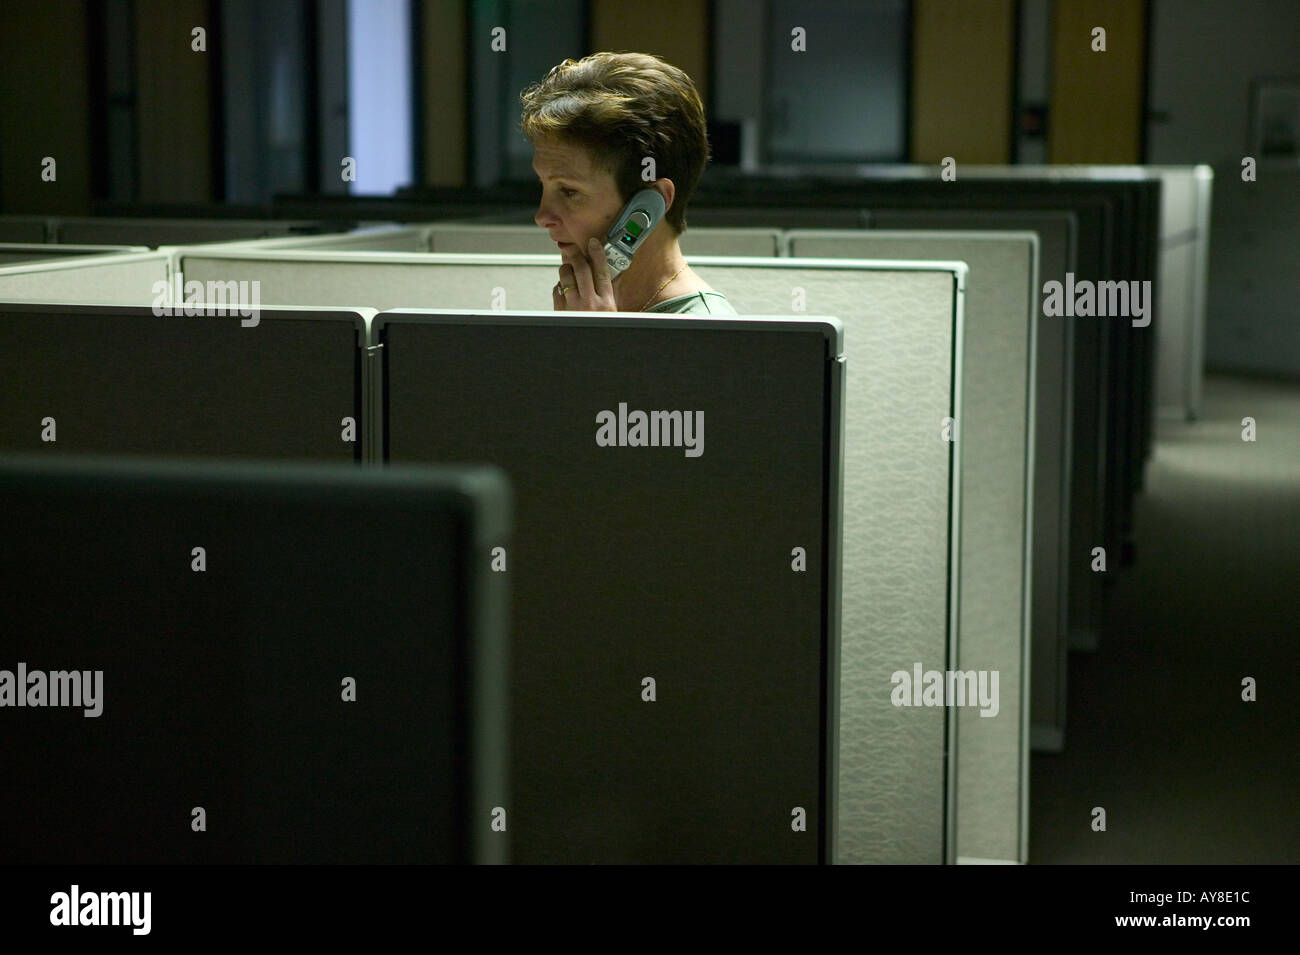 cramped office space. Female Employee On Cell Phone While Working After Hours In Cubicle Office - Stock Image Cramped Space